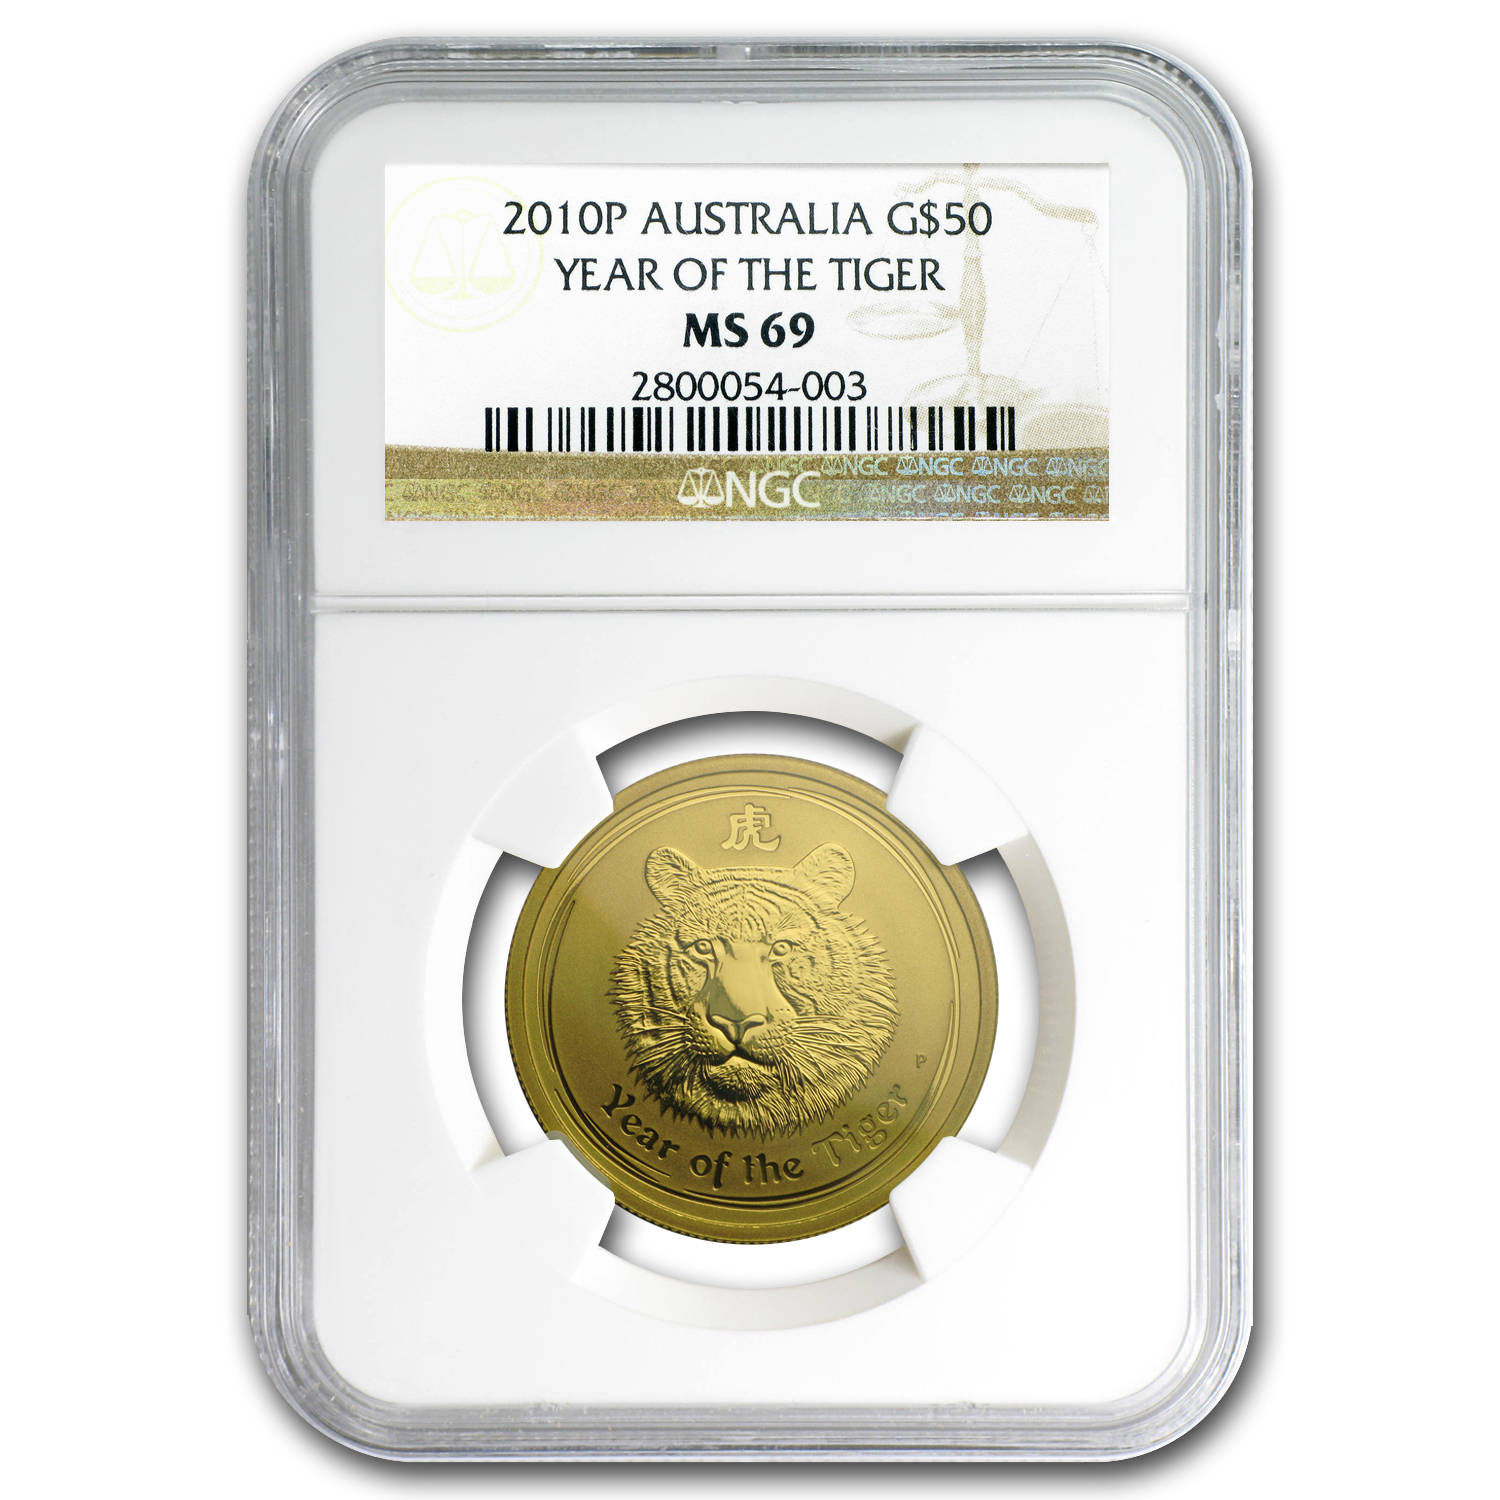 2010 Australia 1/2 oz Gold Lunar Tiger MS-69 NGC (Series II)